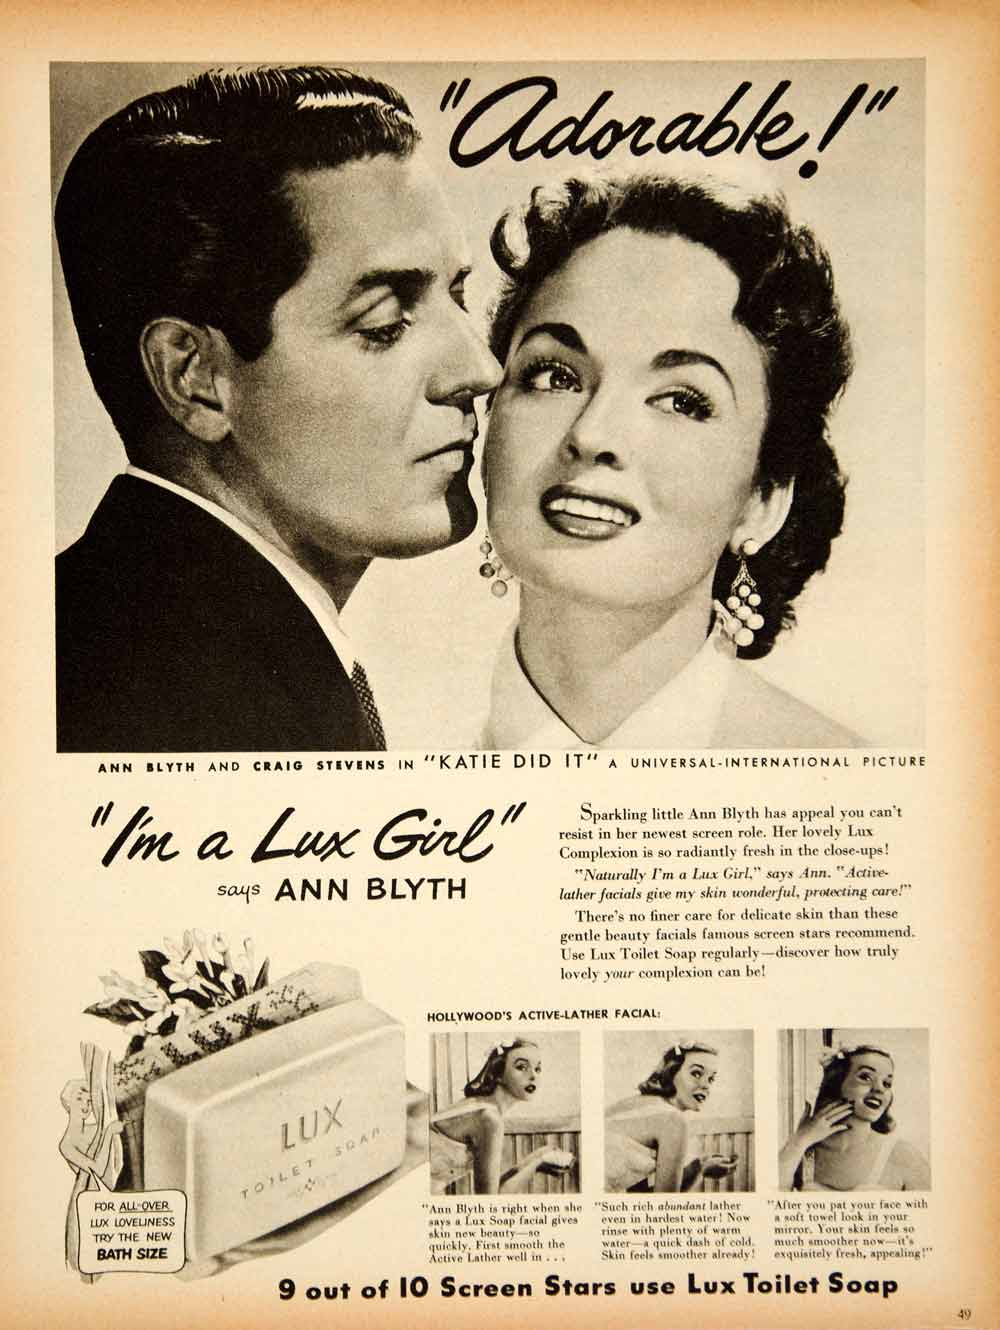 1950 Ad Lux Toilet Soap Ann Blyth Craig Stevens Katie Did It Movie Actress YSS2